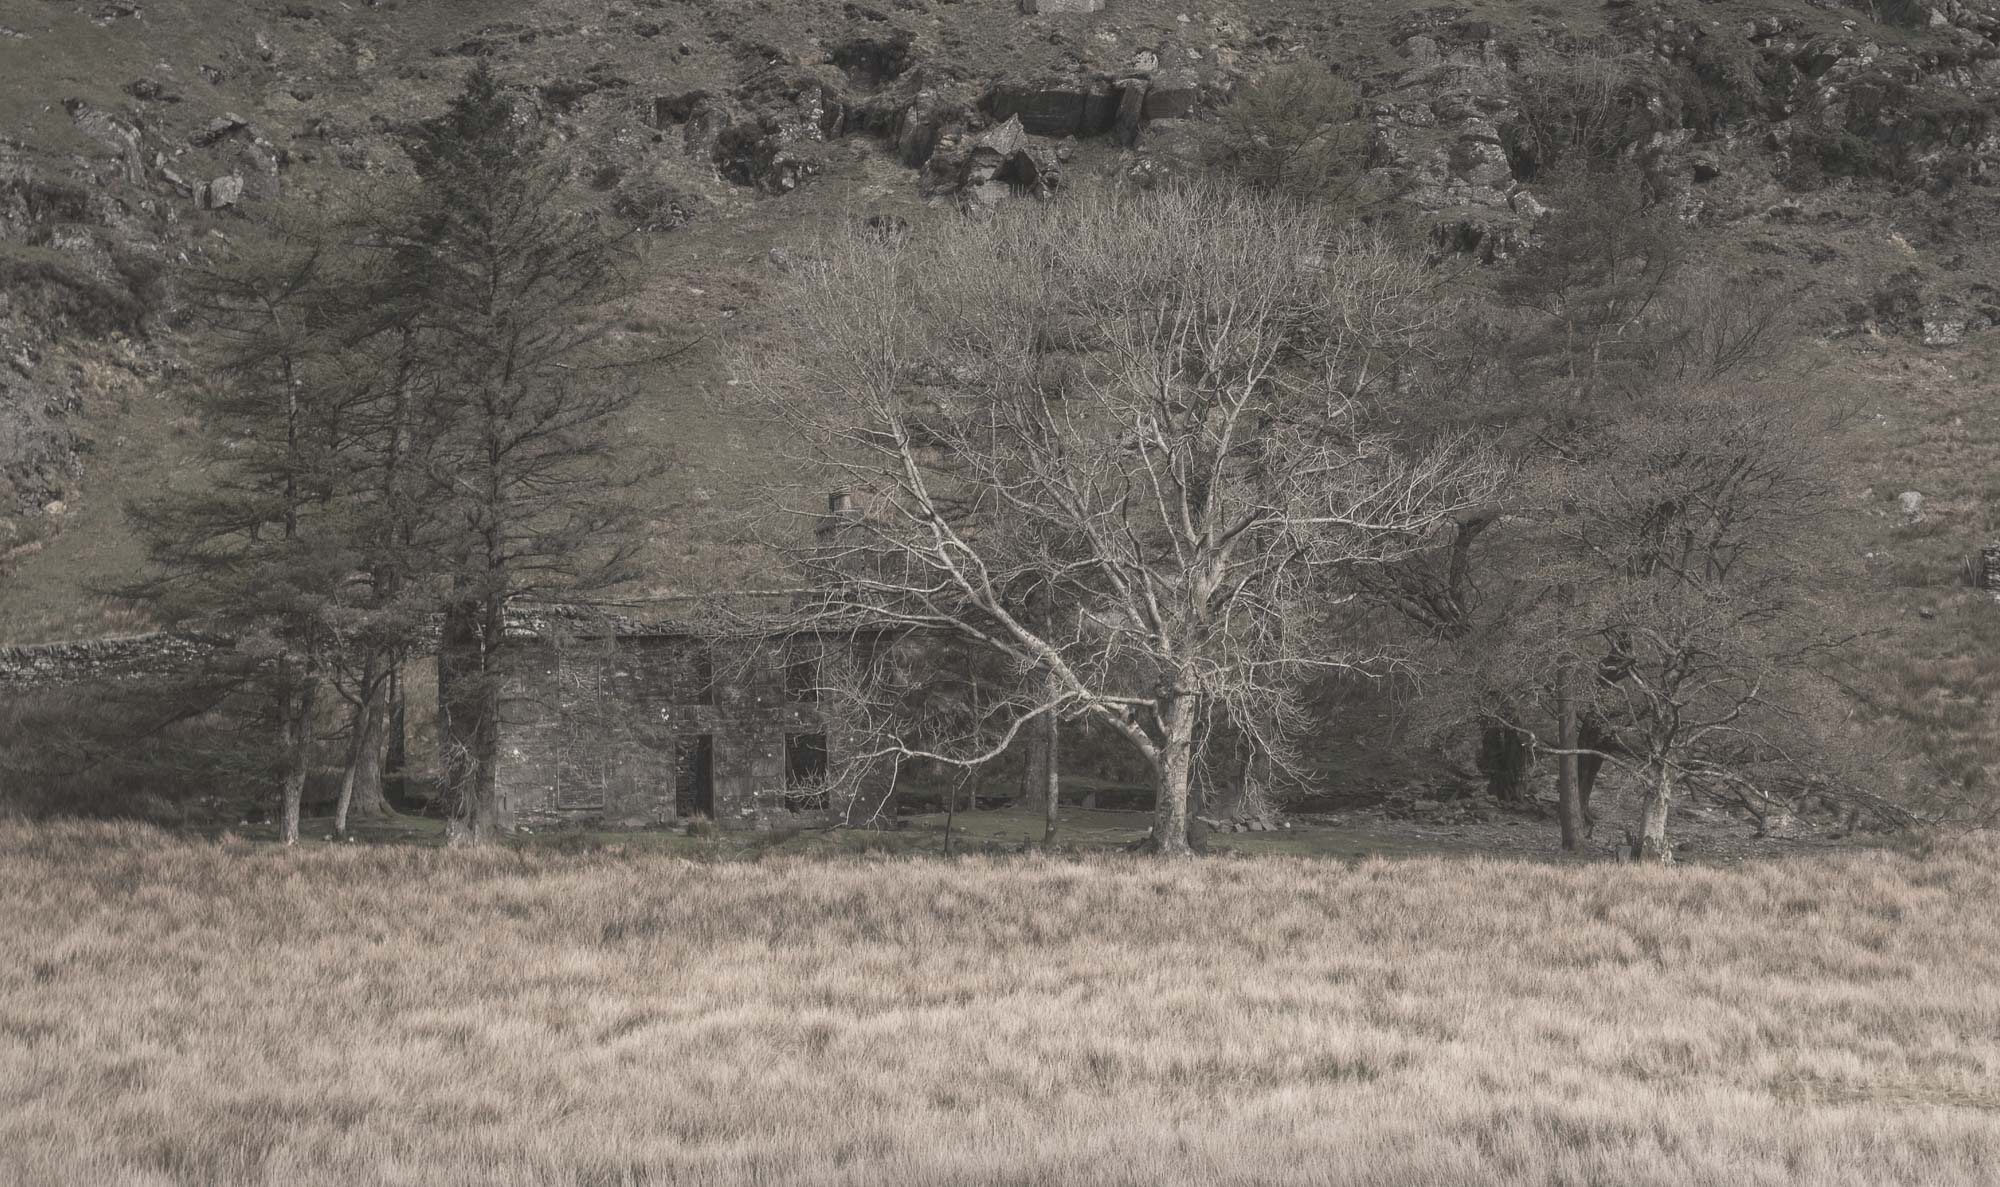 Solitary slate house in trees